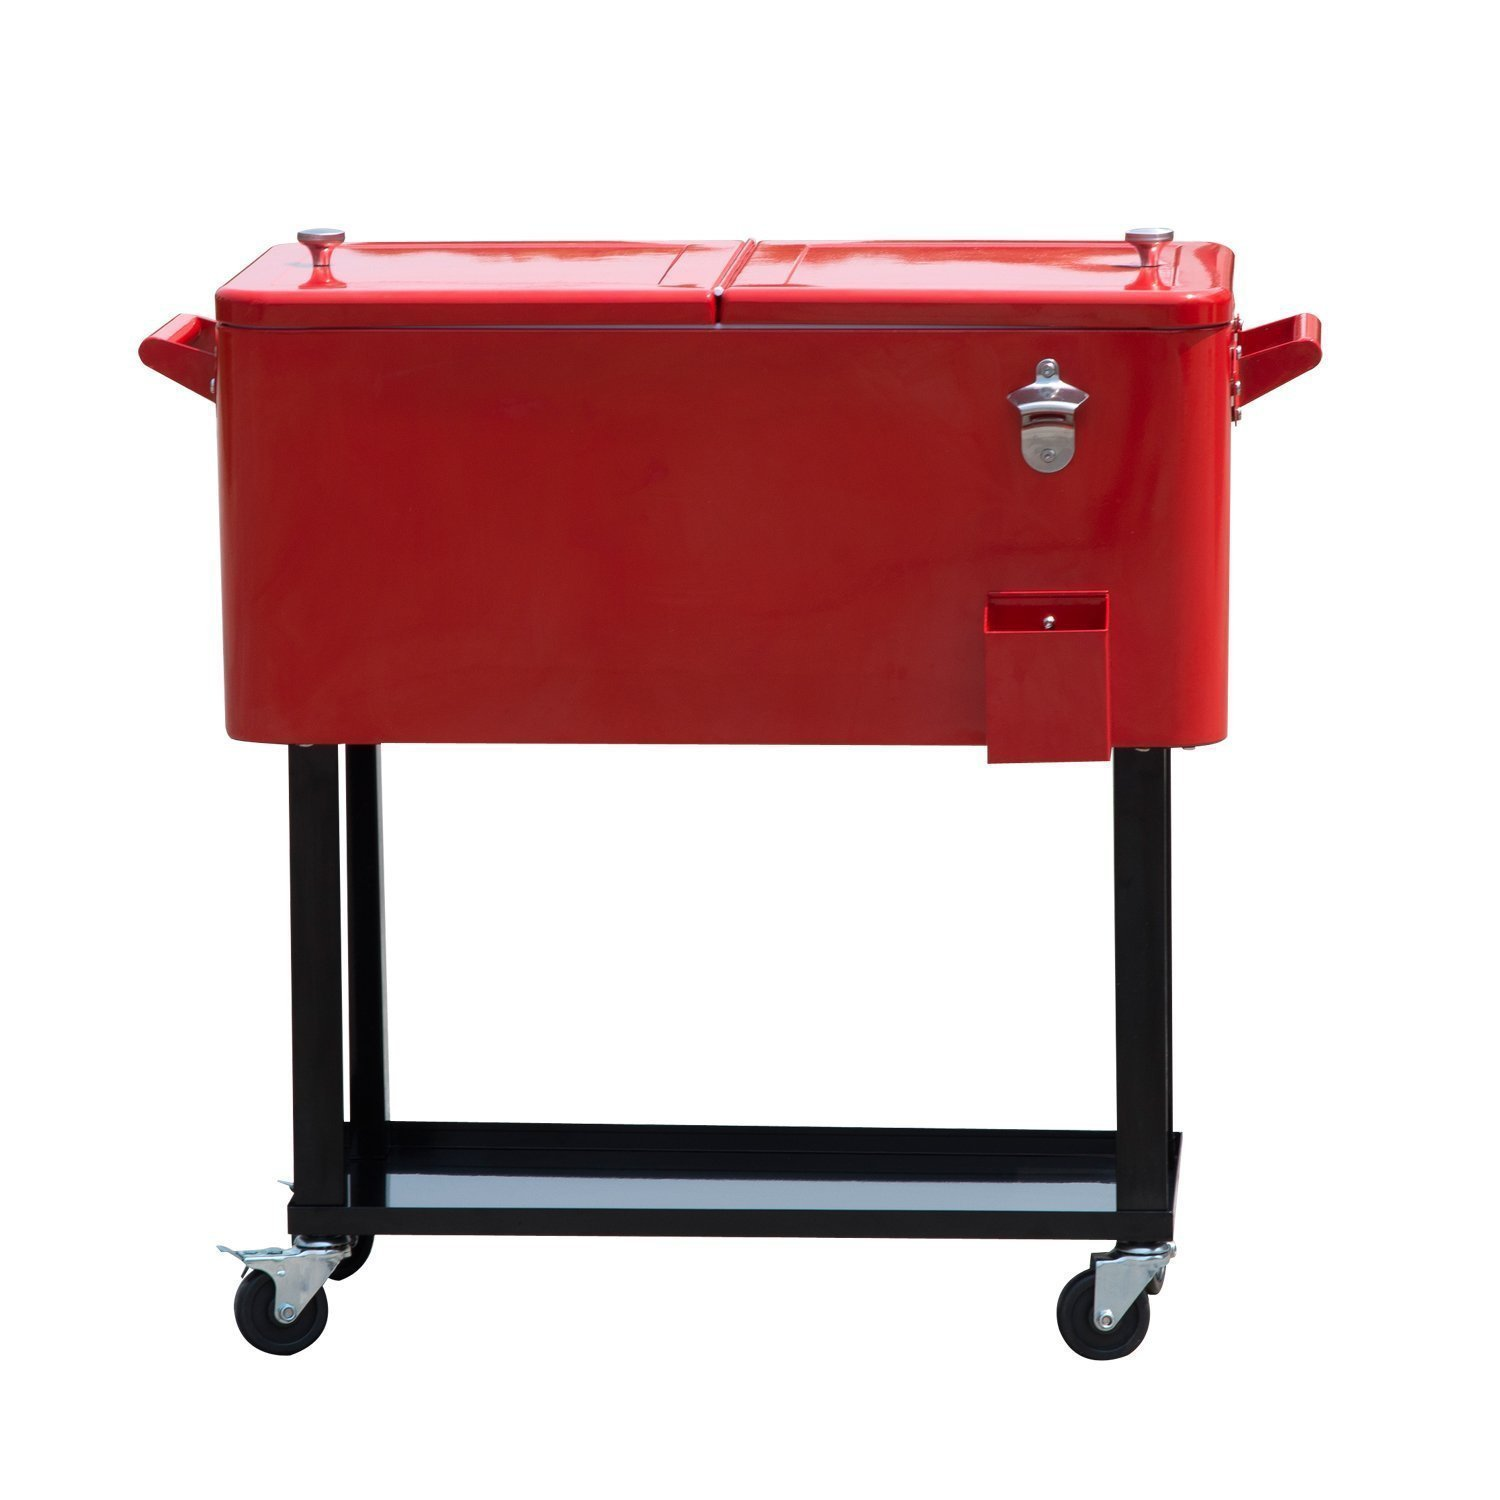 Attractive Amazon.com : Tenive 80 Quart Retro Cooler Patio Rolling Matel Cooler Steel  Ice Chest Portable Patio Party Bar Drink Entertaining Outdoor Cooler Cart    Red ...